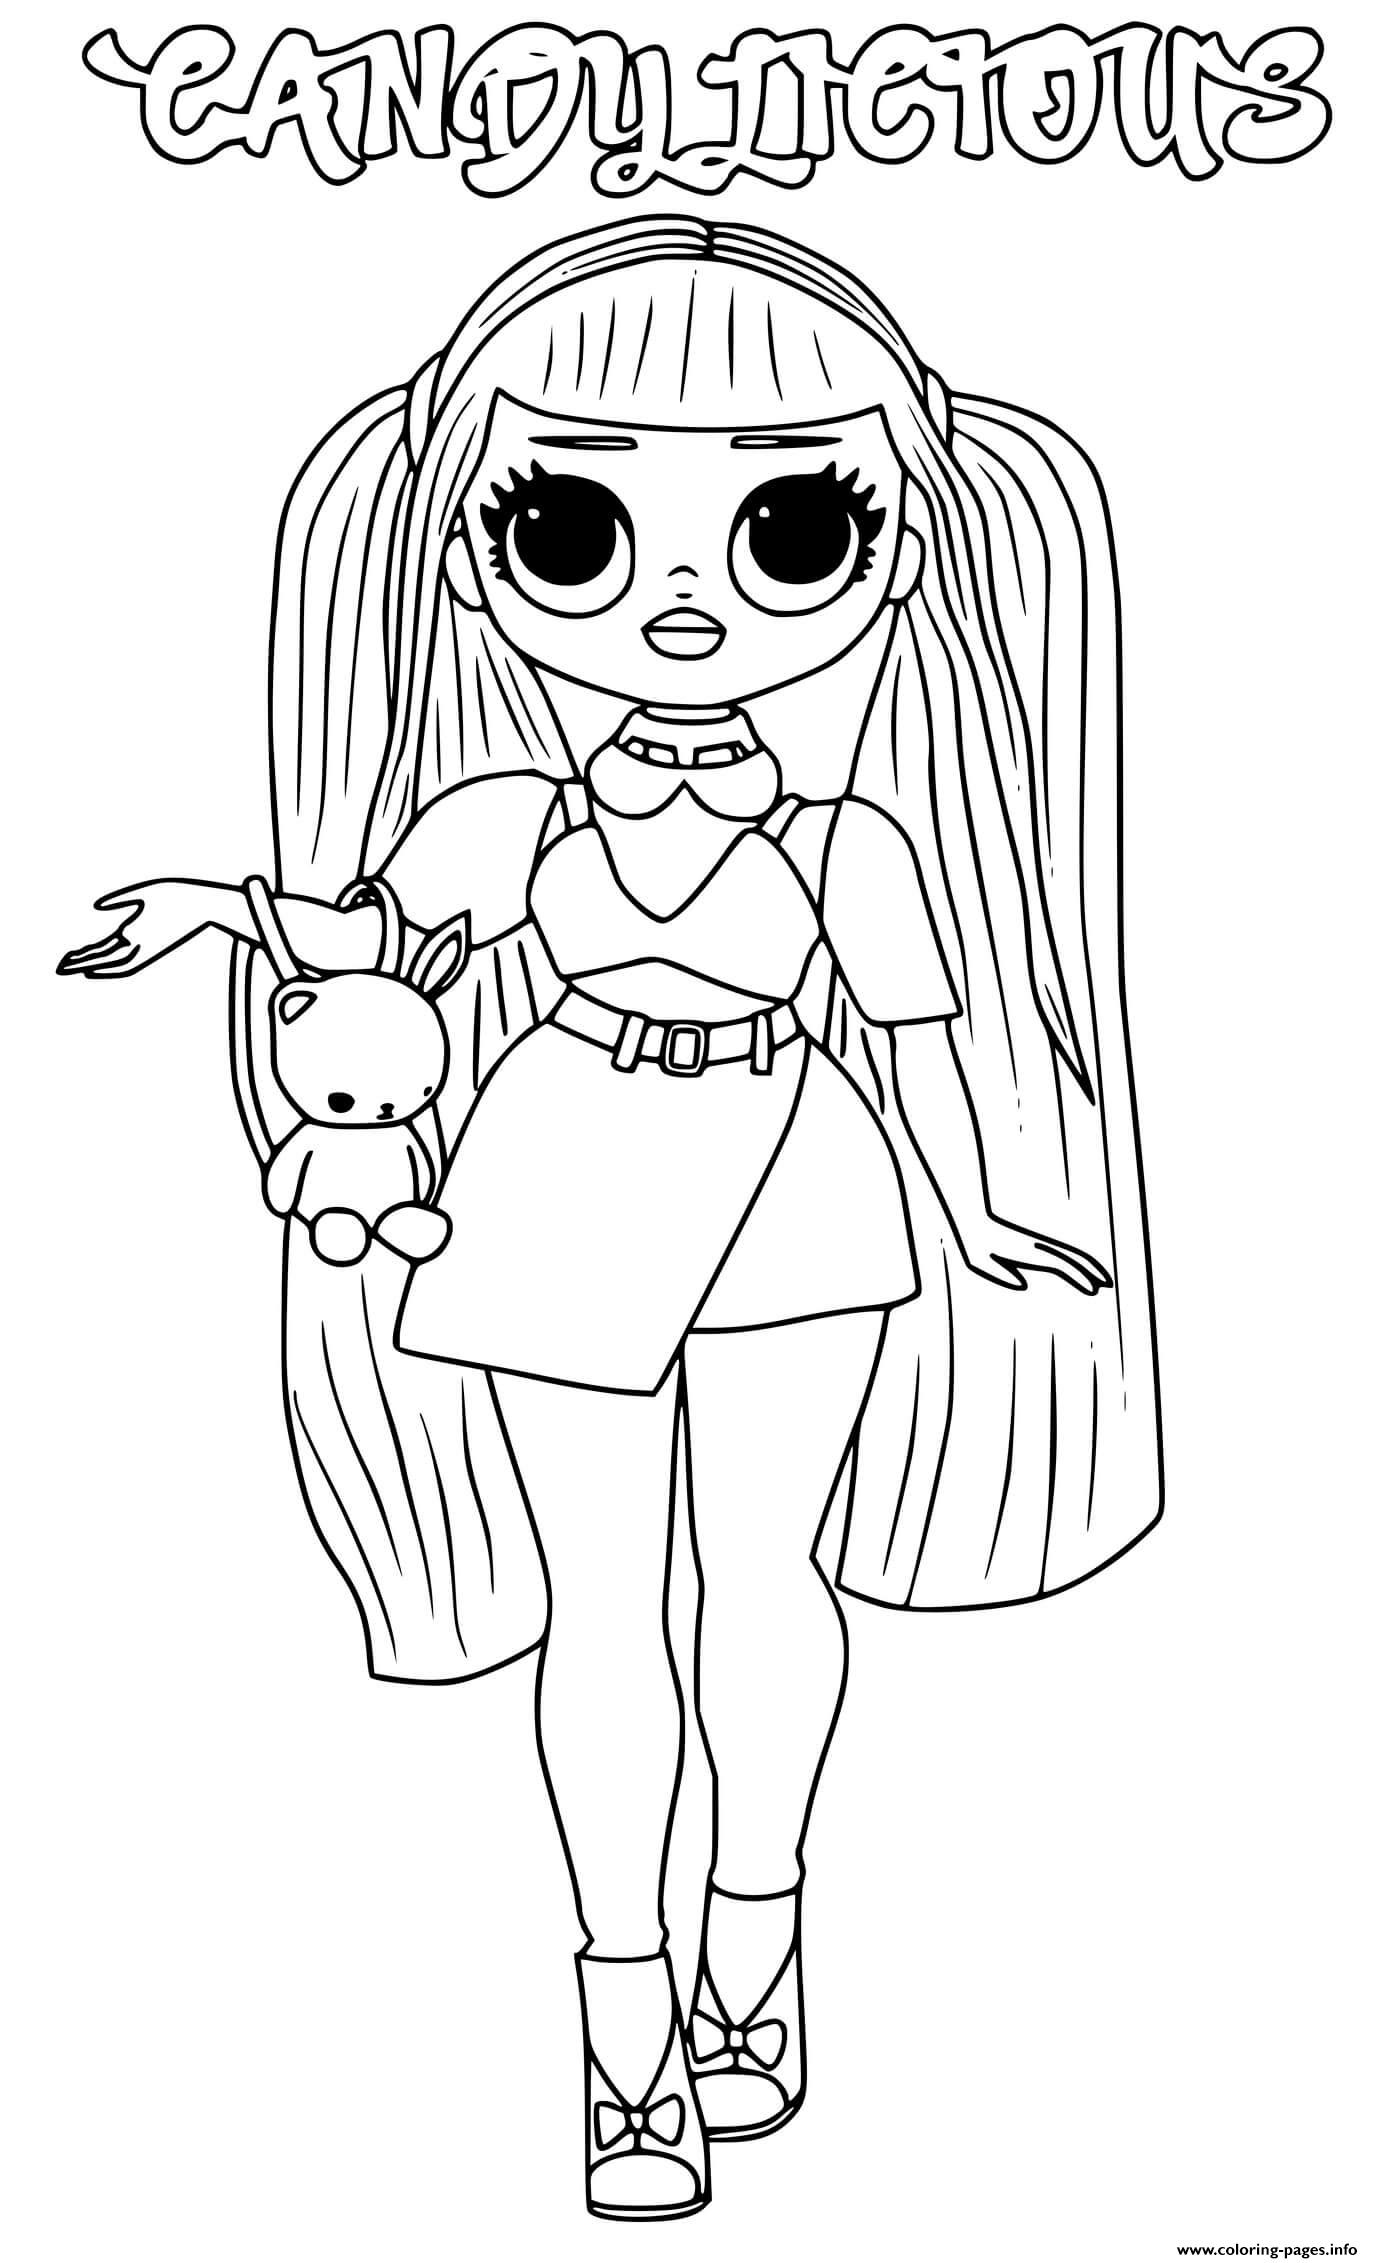 Lol Omg Coloring Pages Printable : coloring, pages, printable, Candylicious, Coloring, Pages, Printable